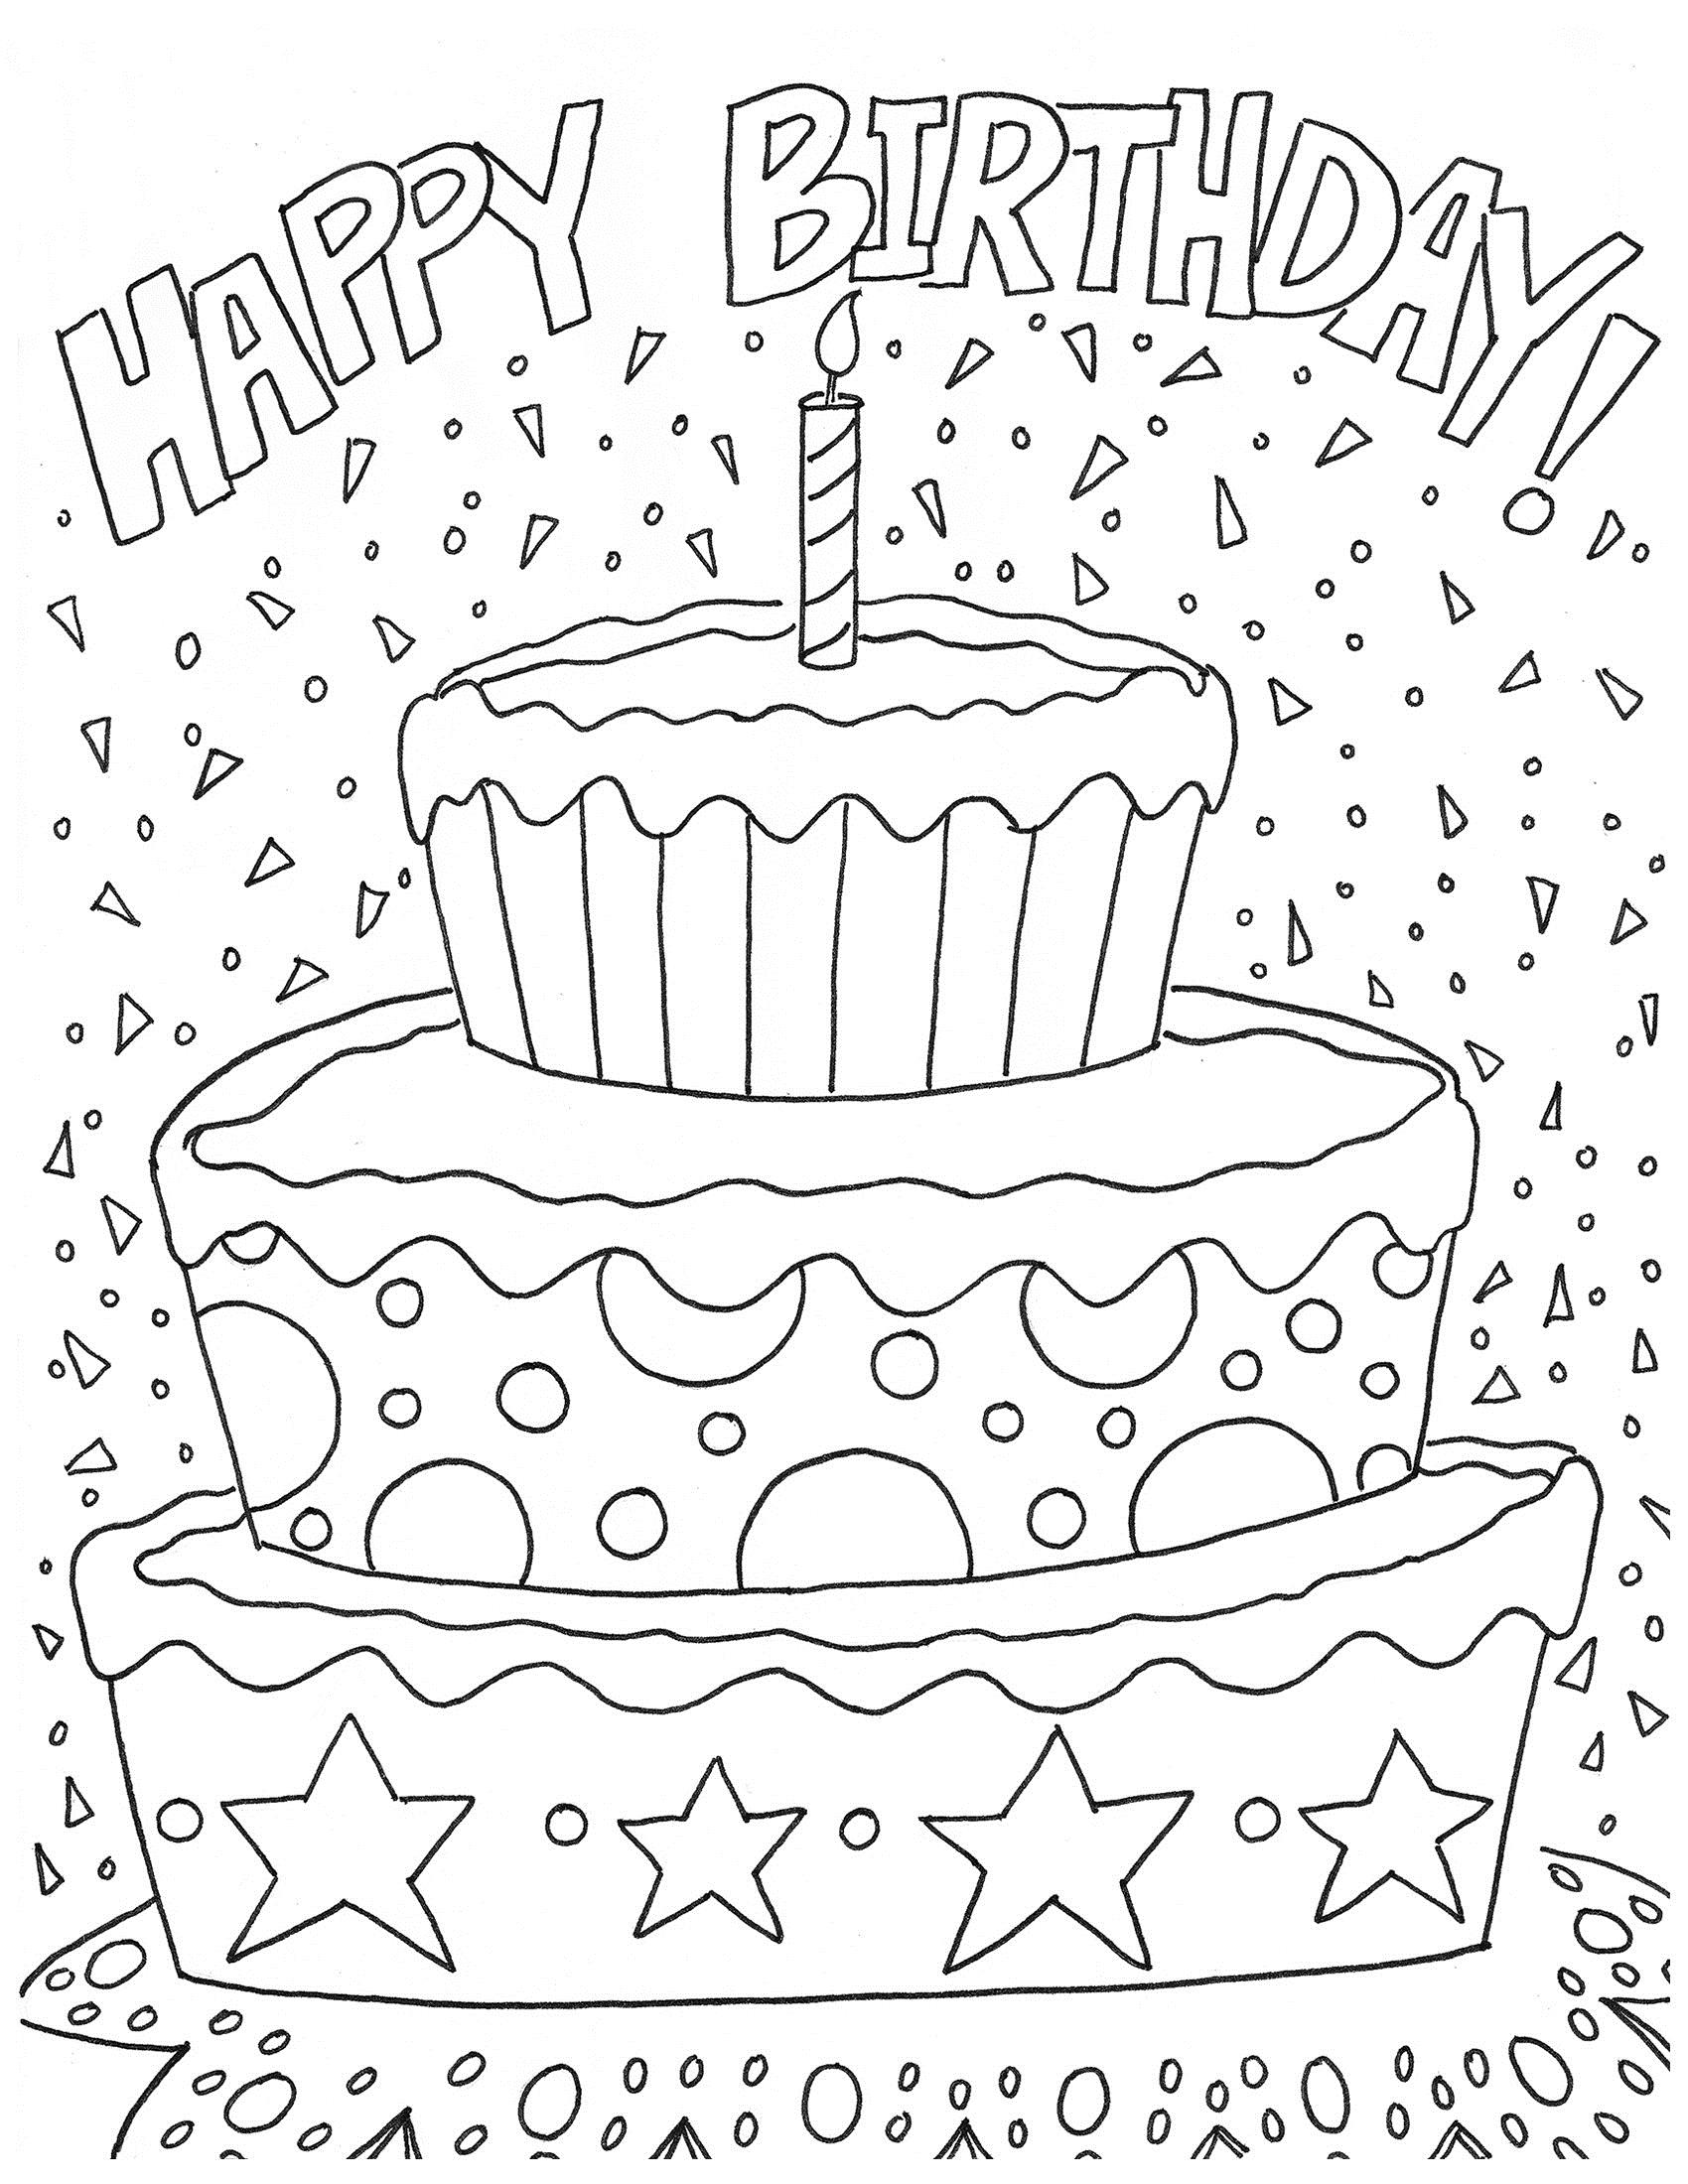 free printable birthday coloring pages ; Hersheys-Birthday-Coloring-Page